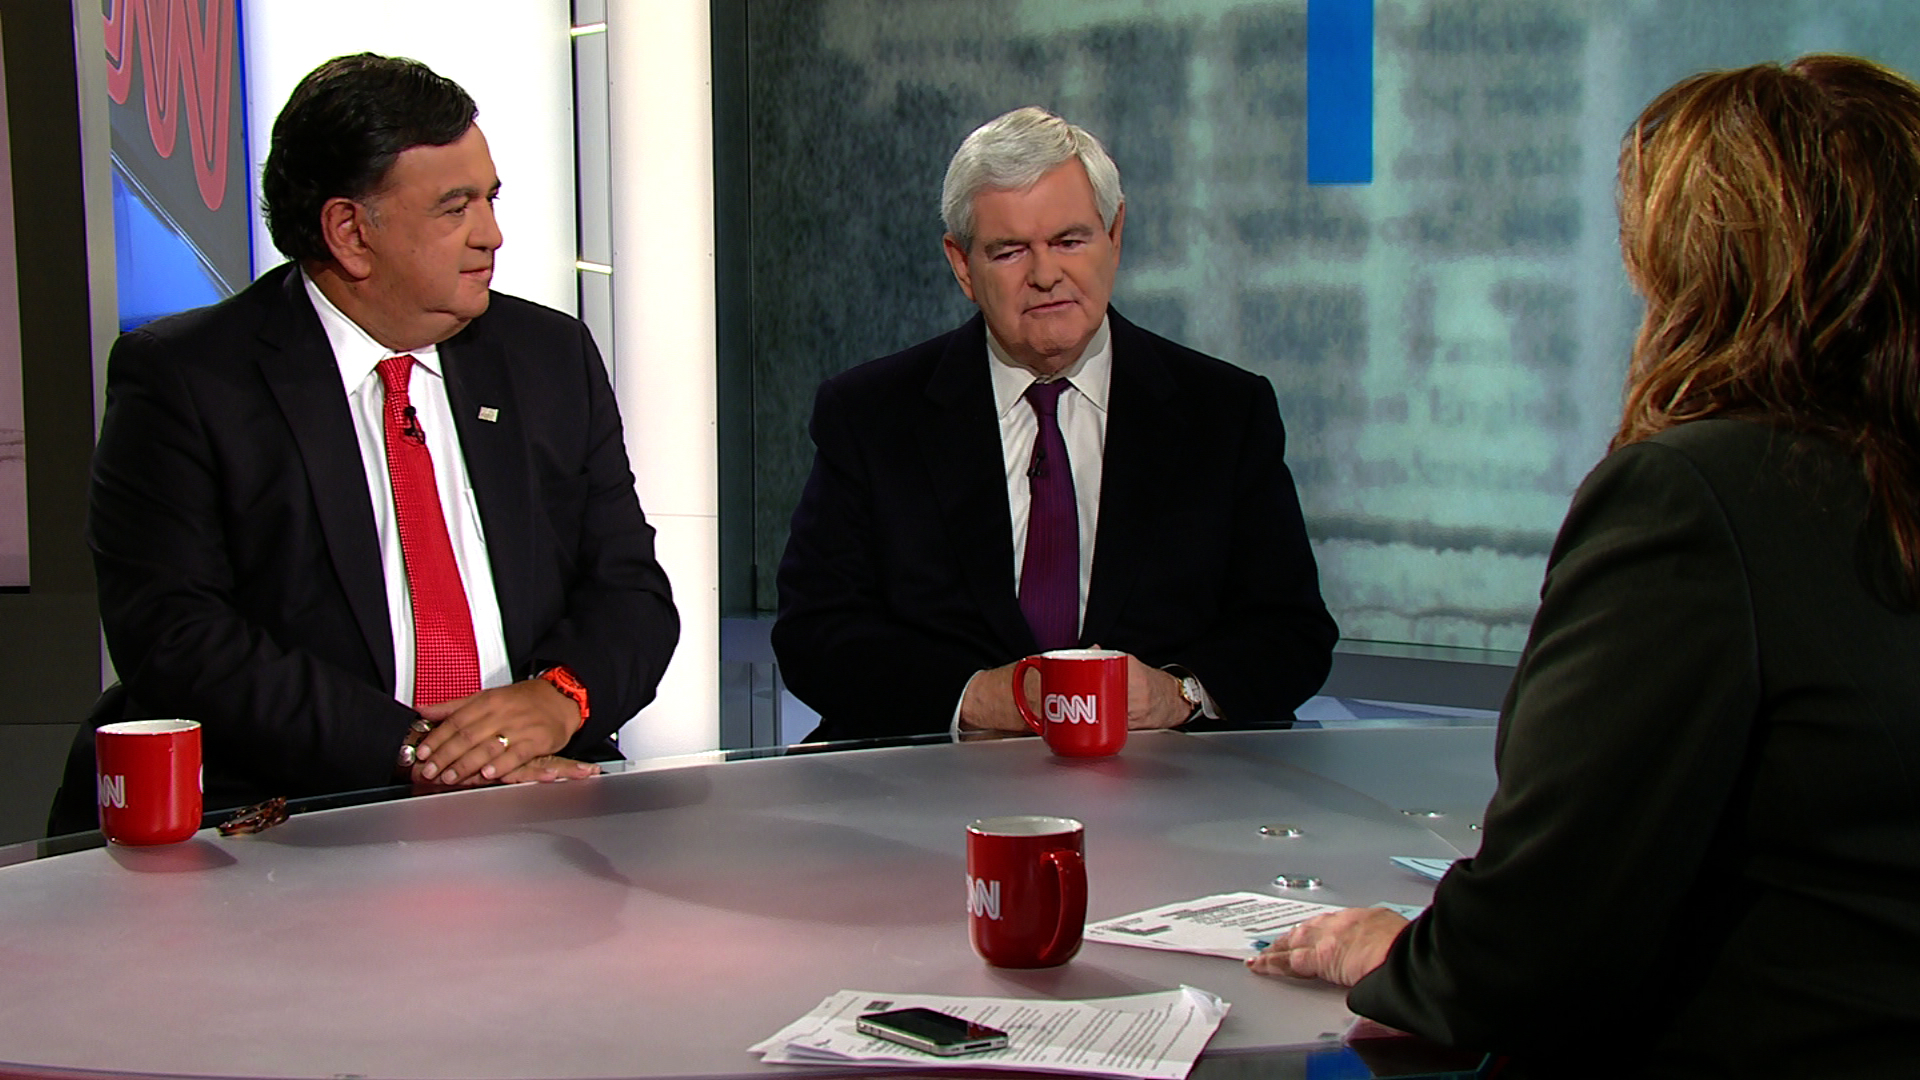 Richardson, Gingrich spar over candidates' foreign policy strengths